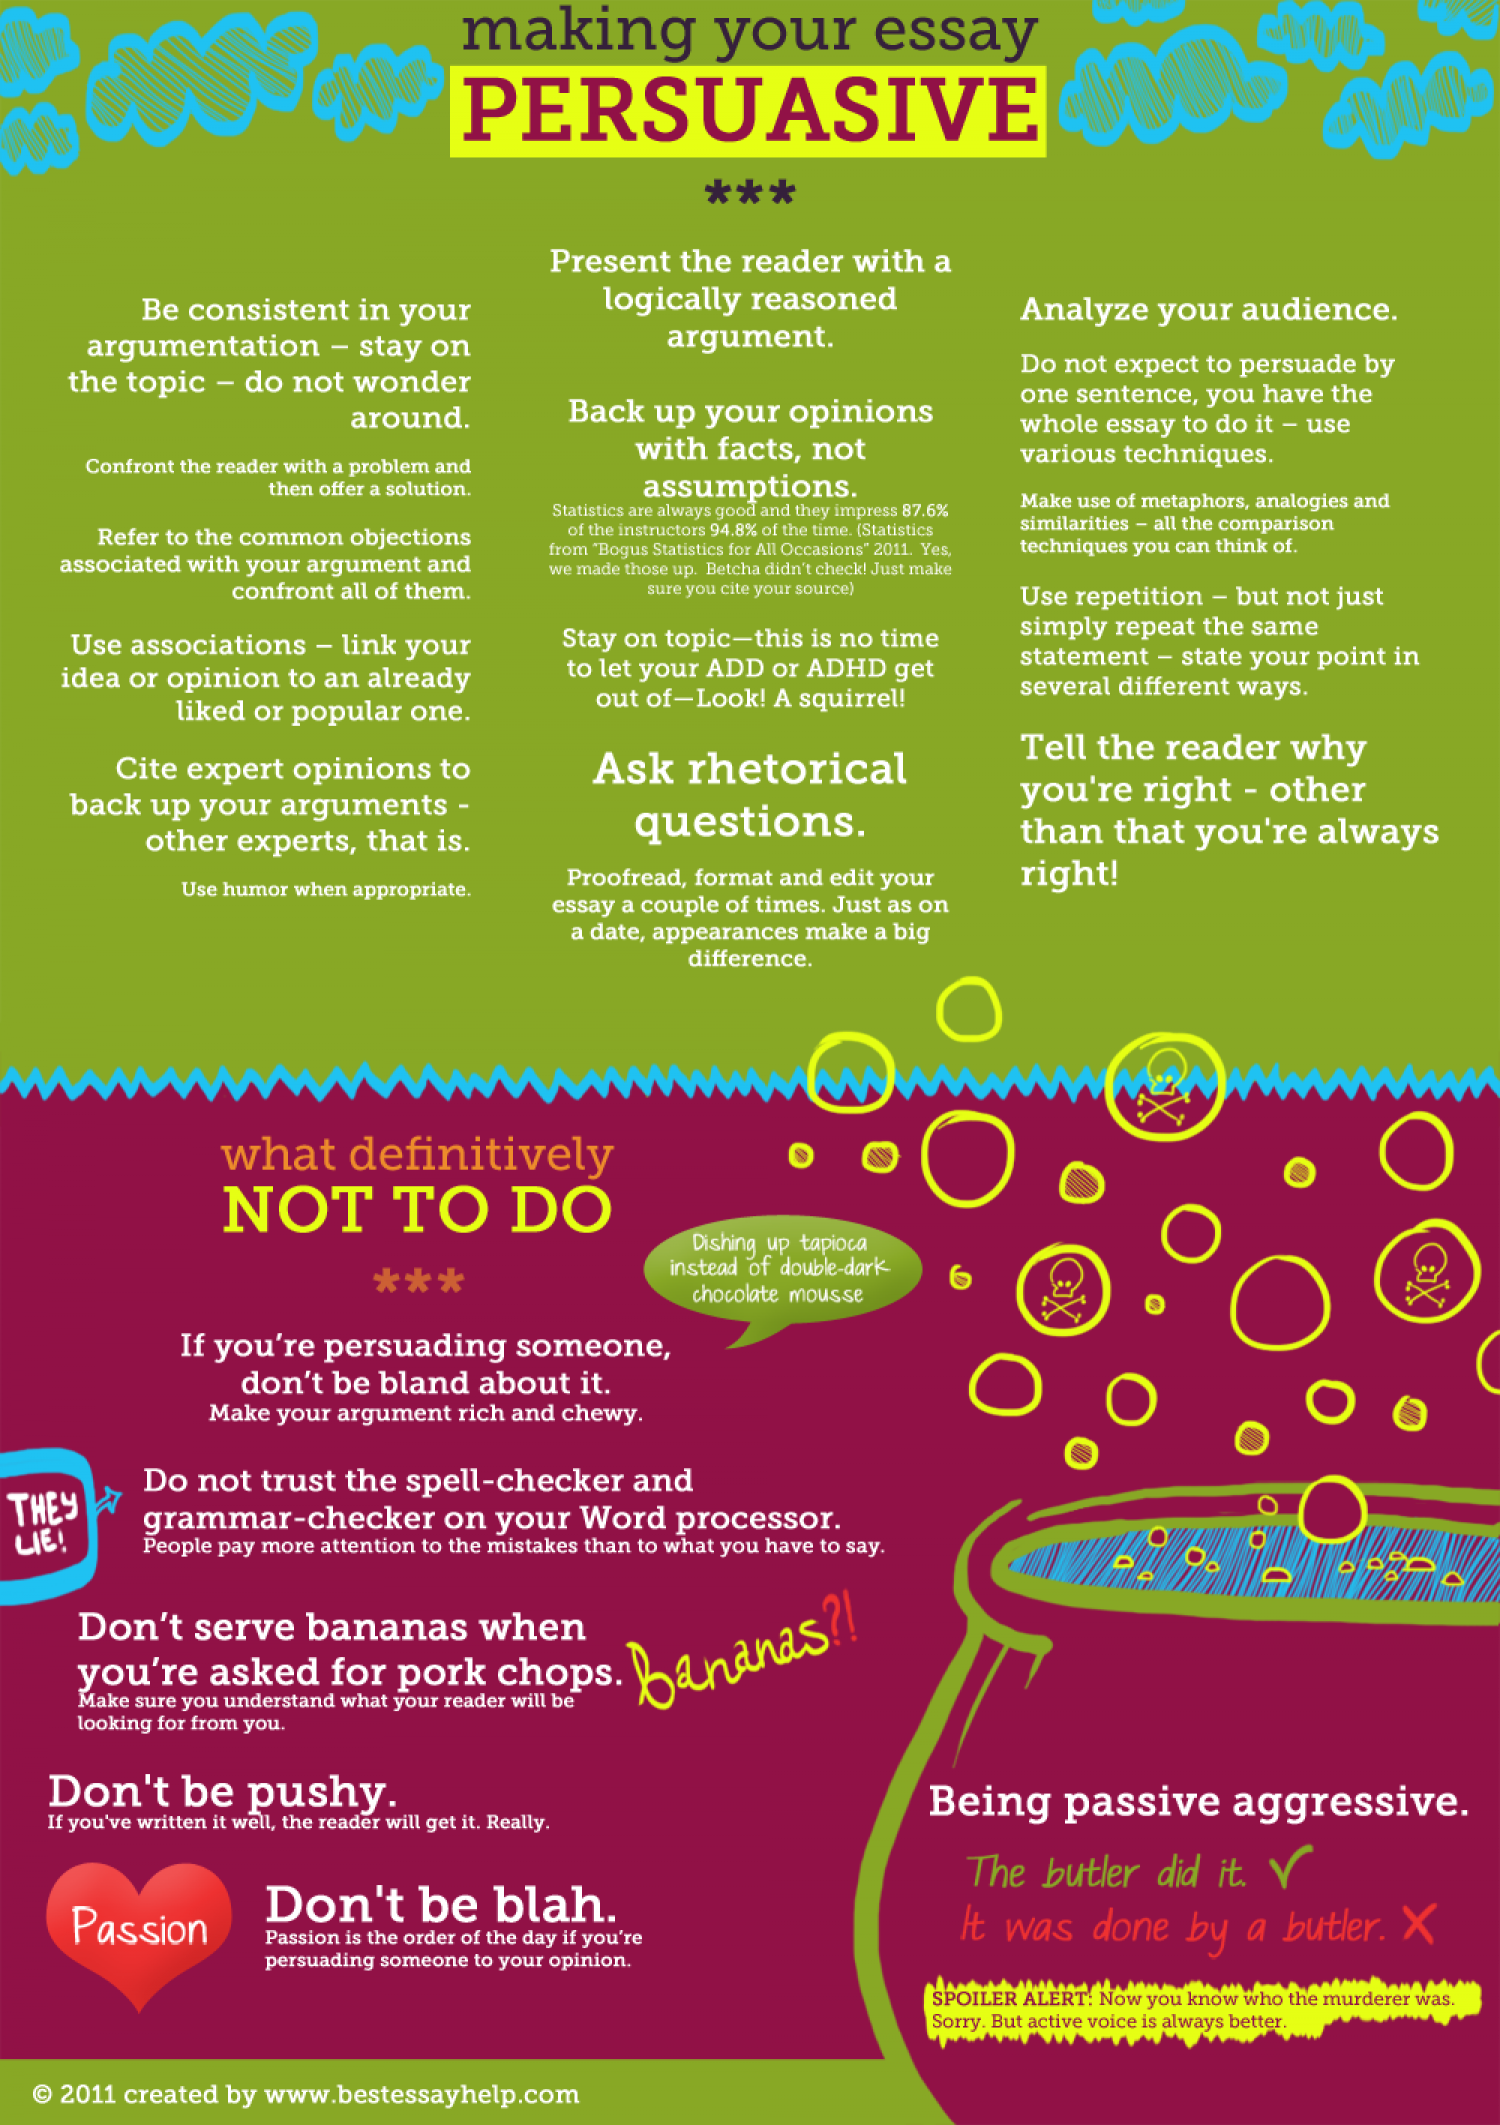 writing persuasive essay infographic ingl3103 writing persuasive essay infographic